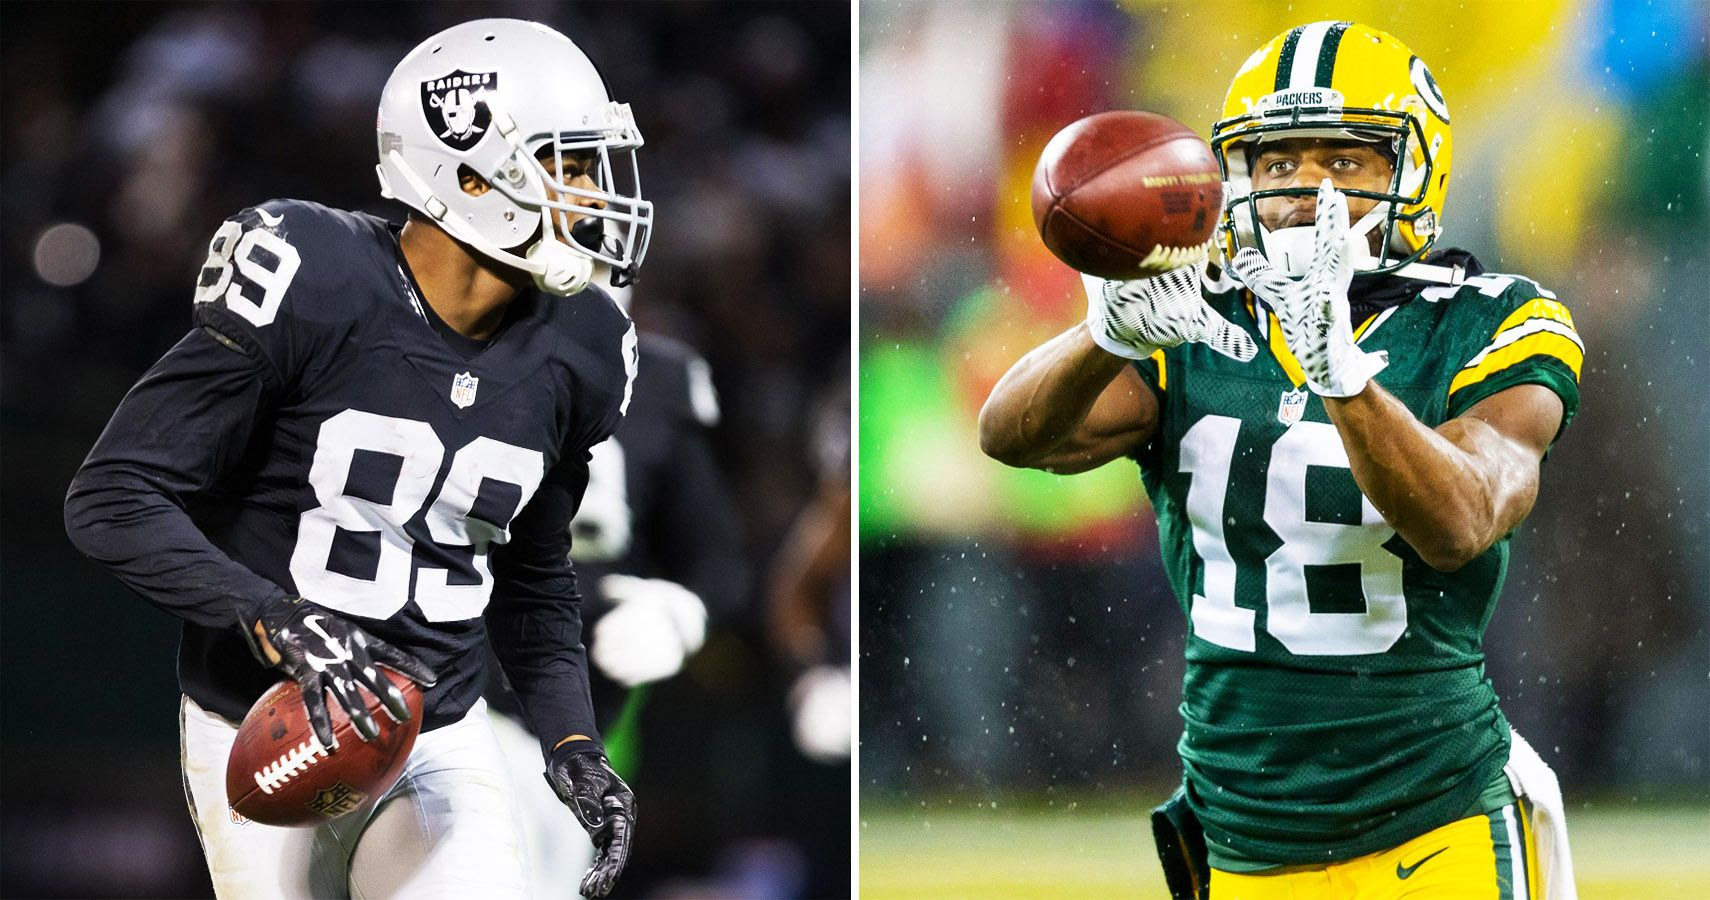 8 NFL Wide Receivers Who Will Thrive And 8 Who Will Disappoint In 2016